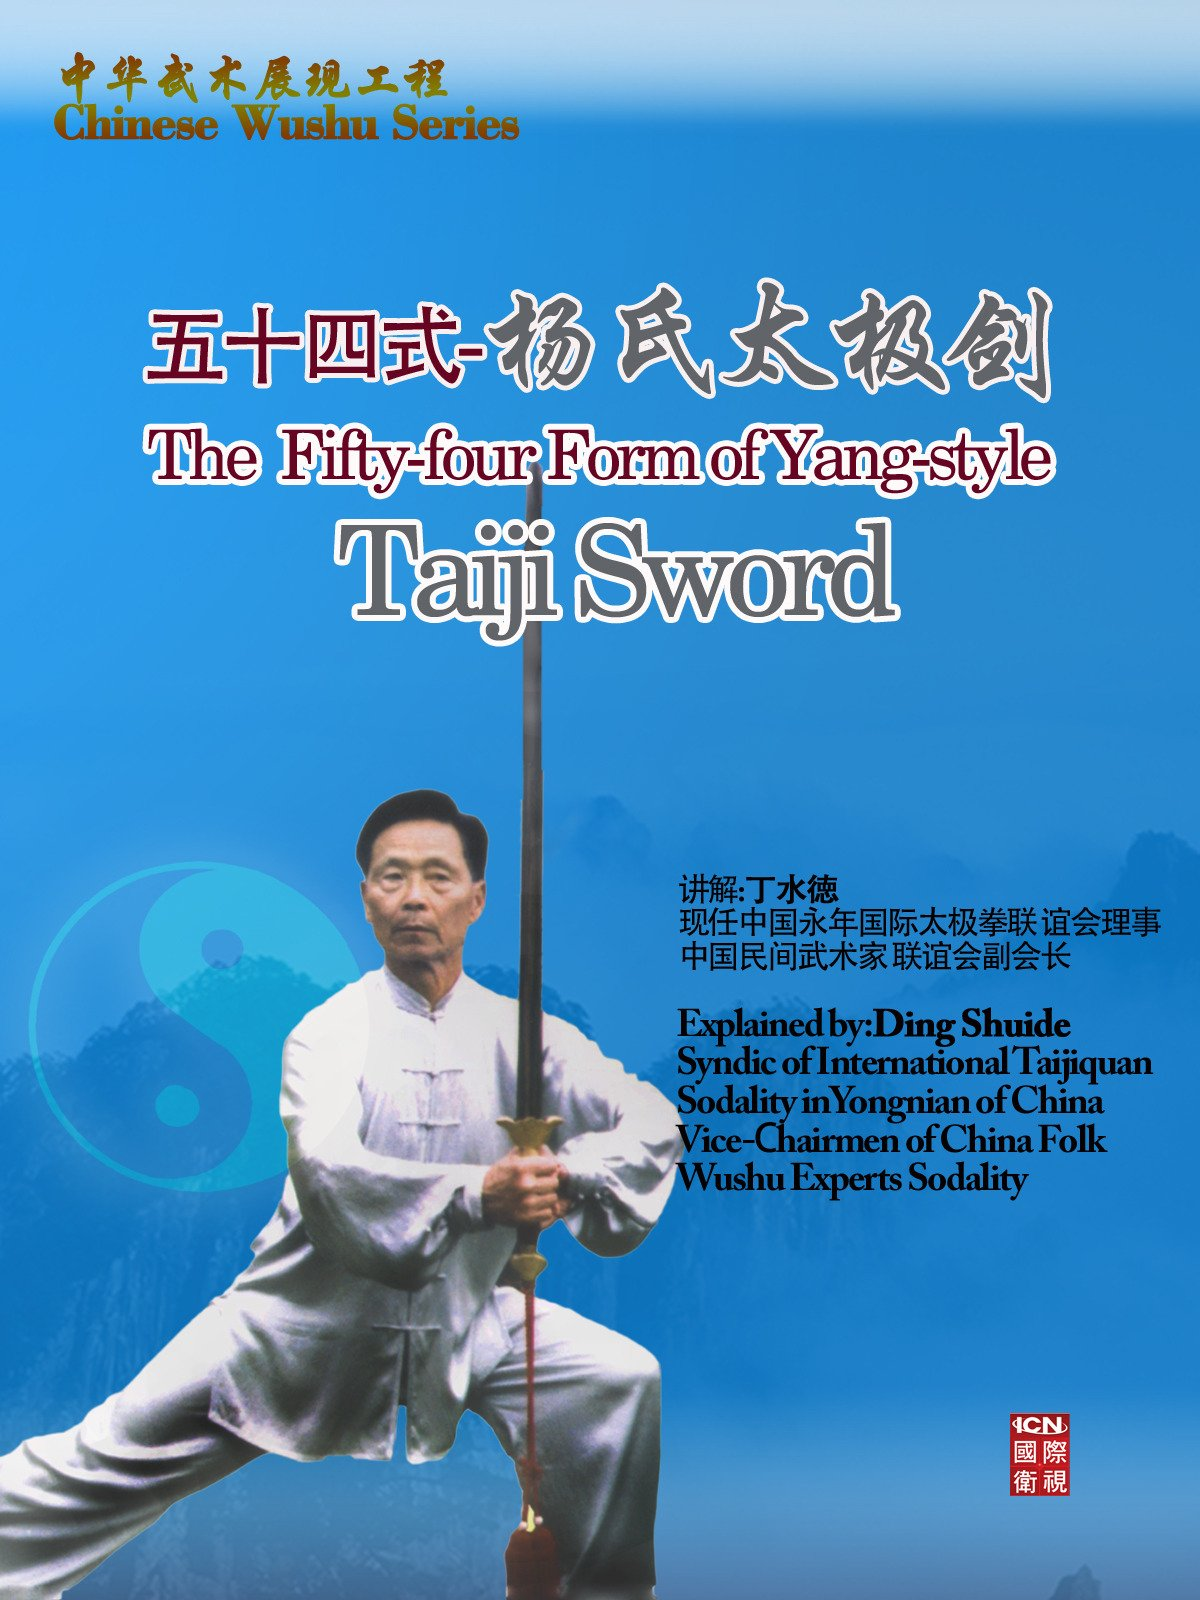 The Fifty-four Form of Yang-style-Taiji Sword(Explained by :Ding Shuide)